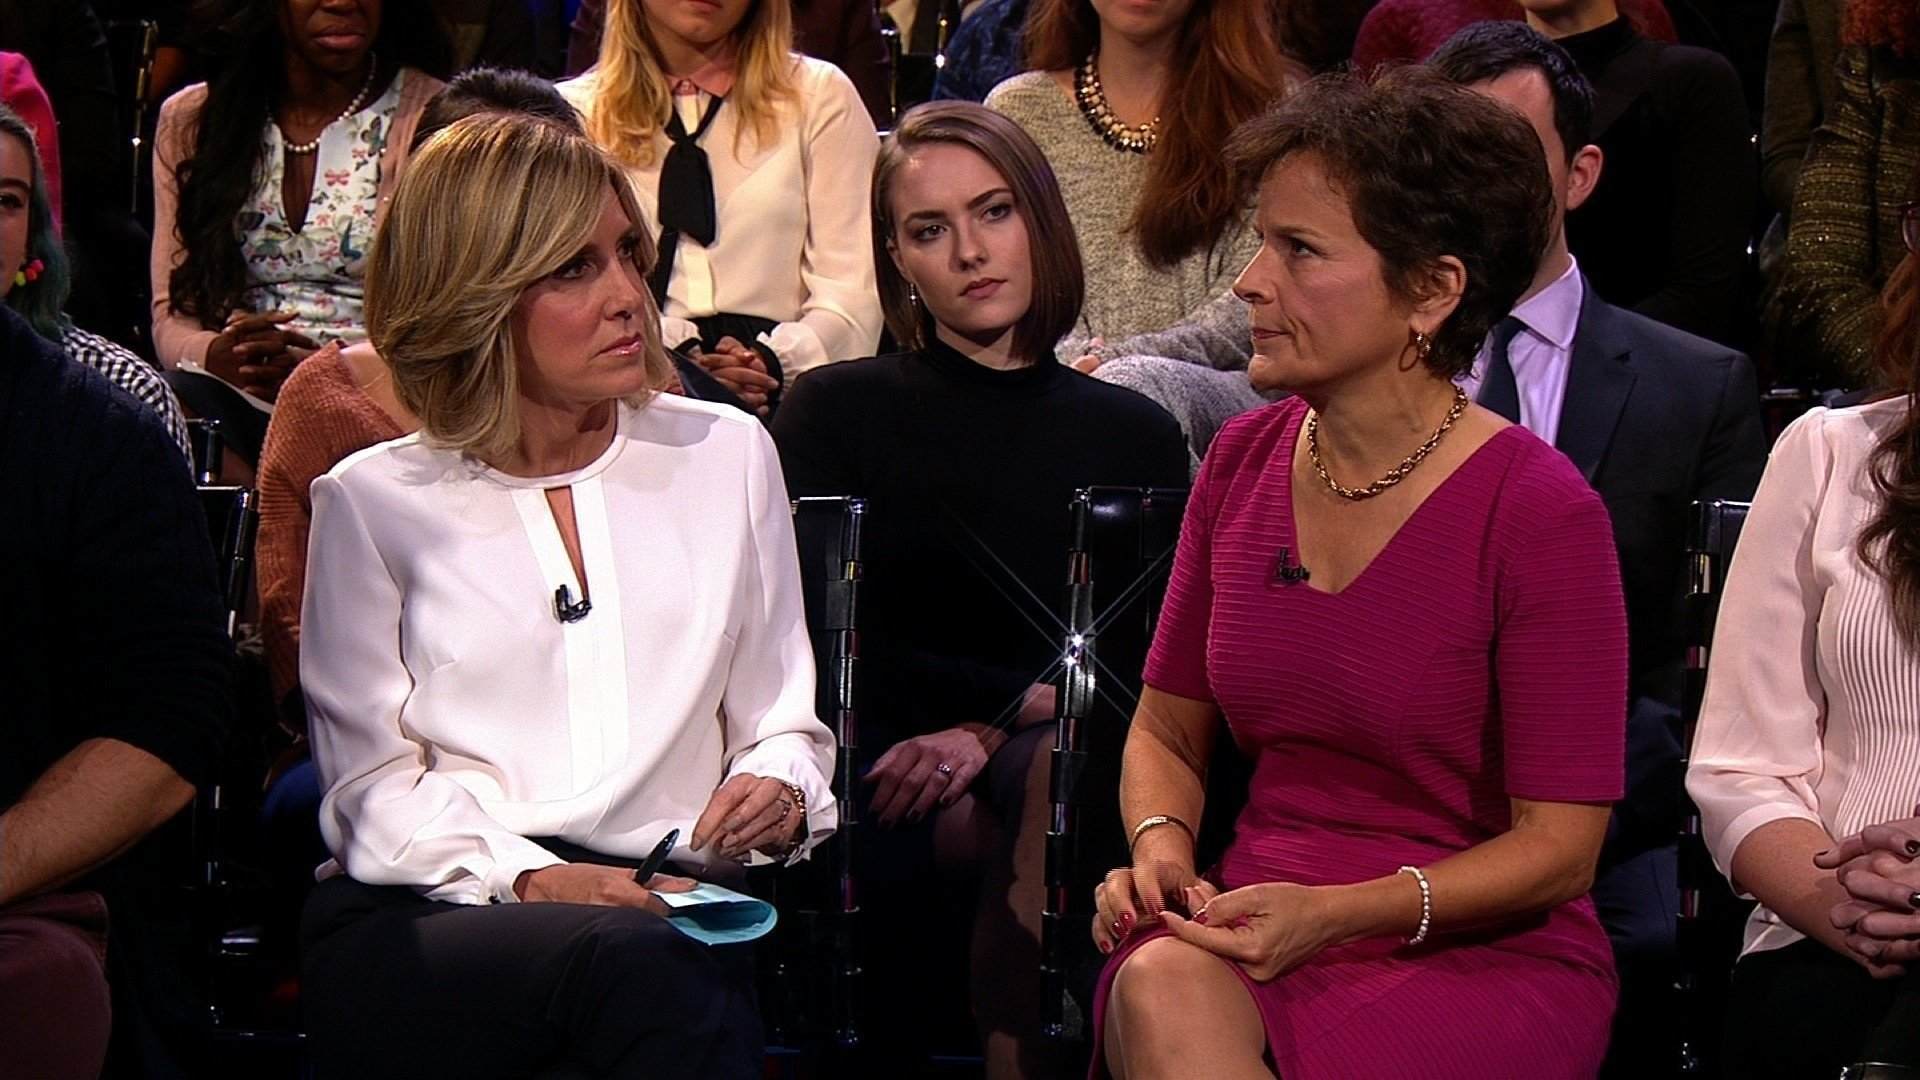 Nearly 20 years ago, a television producer stood up for CNN's Alisyn Camerota when, she says, a reporter sexually harassed her as an intern. Camerota finally thanked Rosemary Freitas Williams on Thursday at CNN's sexual harassment town hall, and asked...